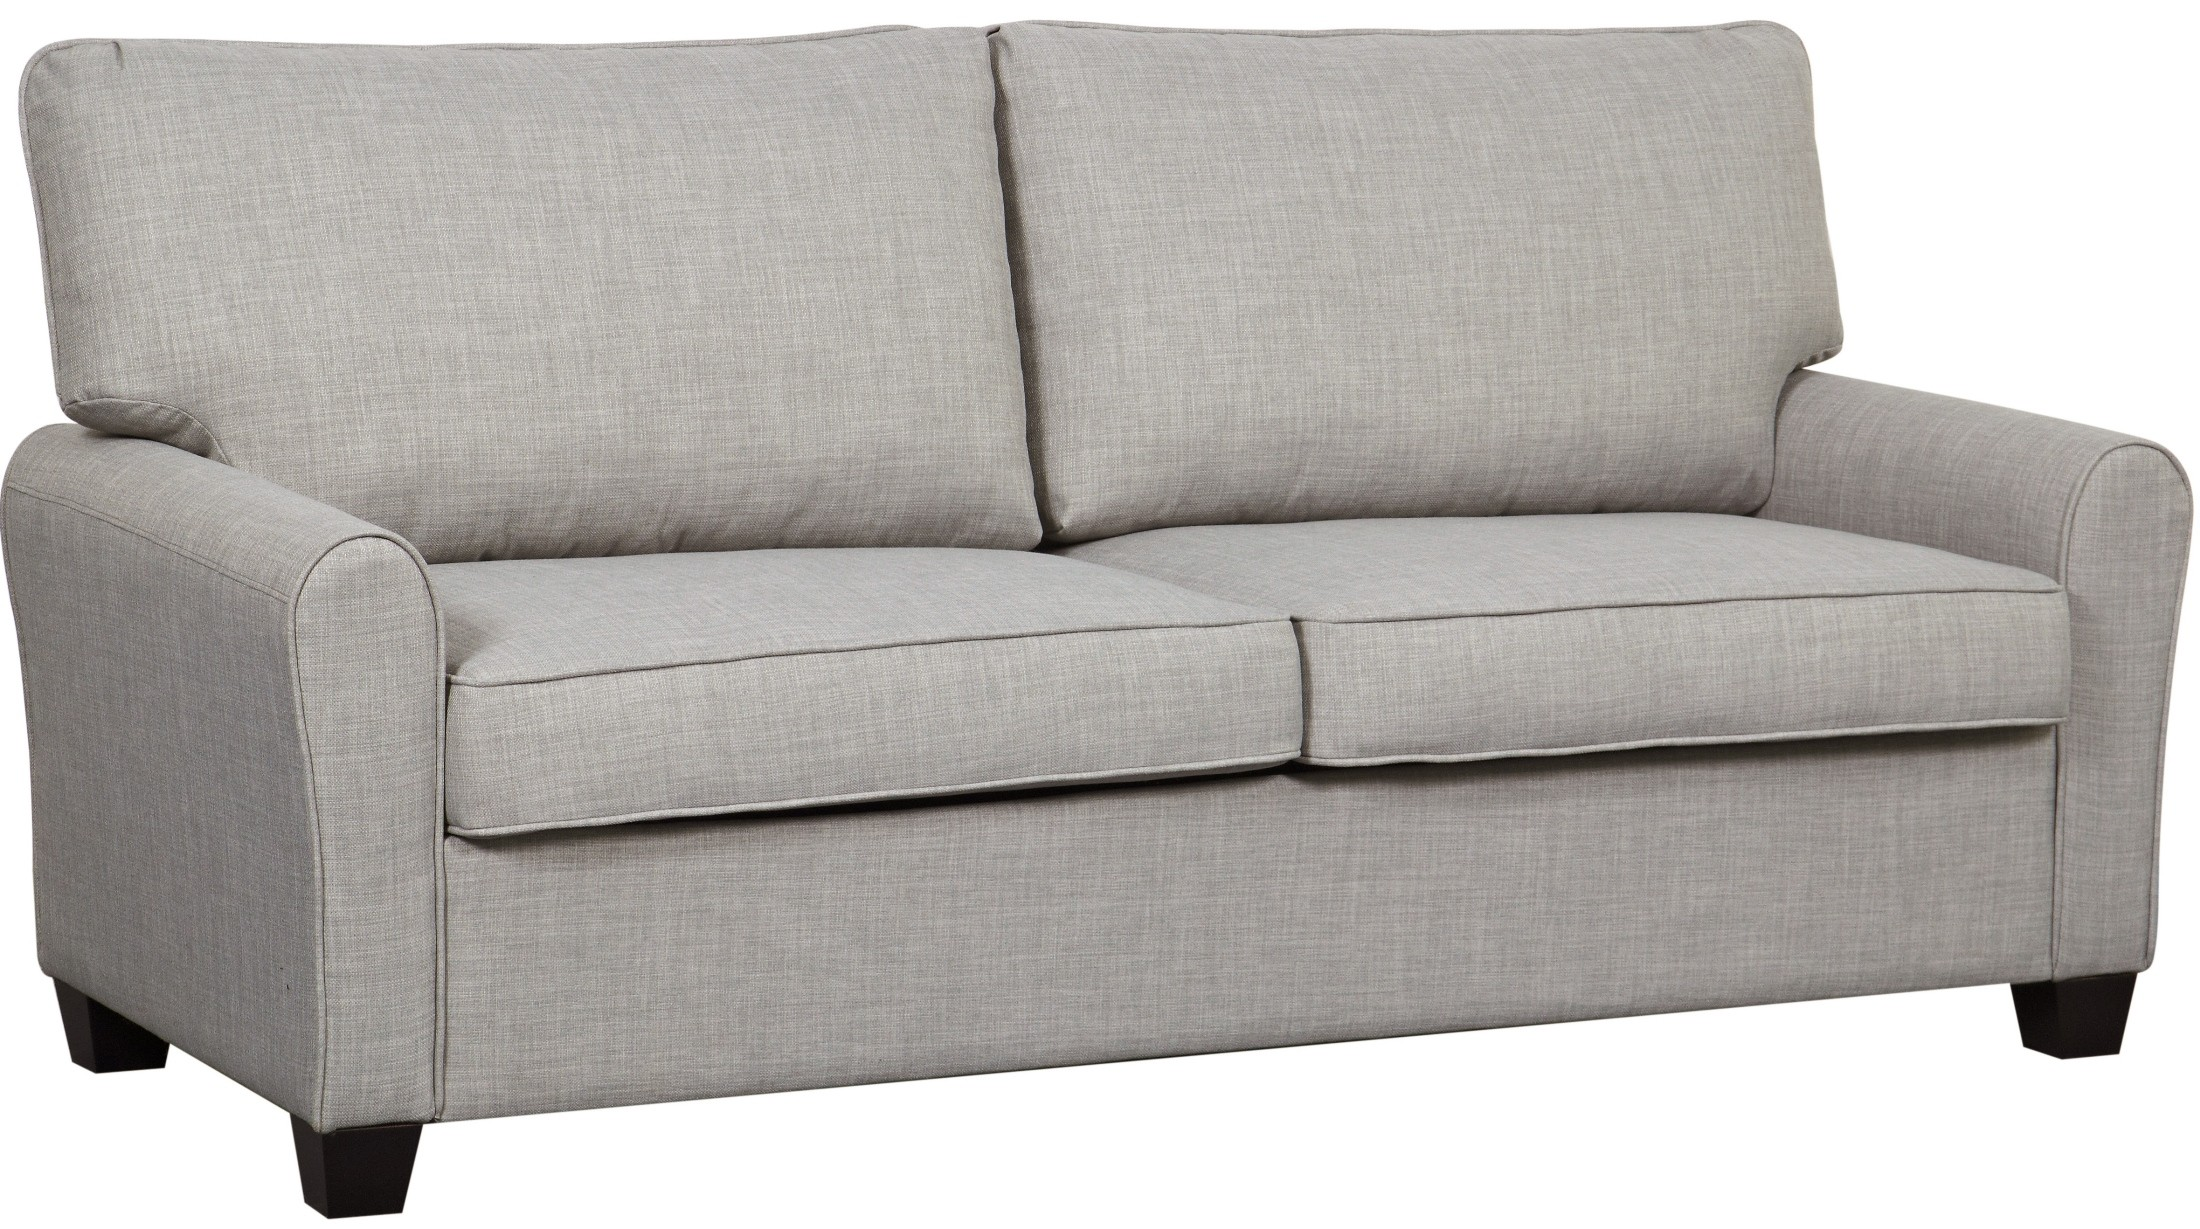 cloud track arm leather two seat cushion sofa sears warranty decorating interior of your house dennison grey from pulaski ds 2637 680 409